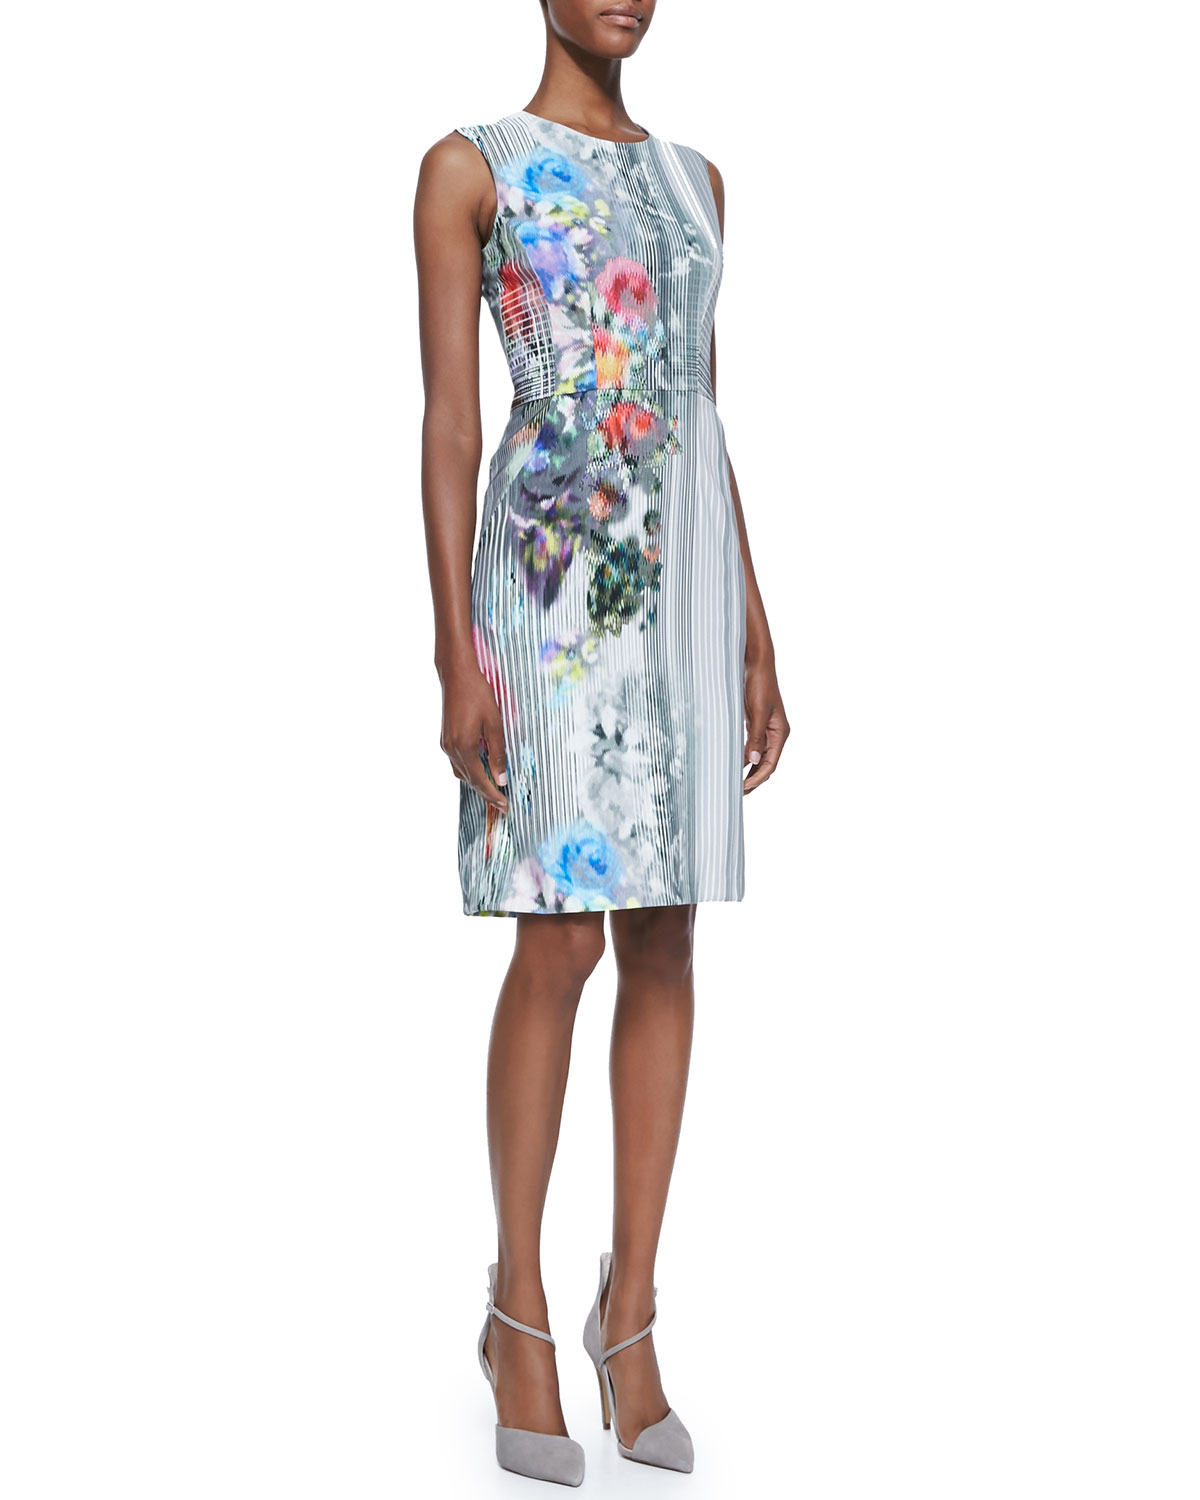 Womens Graphic Floral Print Book Signing Dress   Nanette Lepore   Floral multi